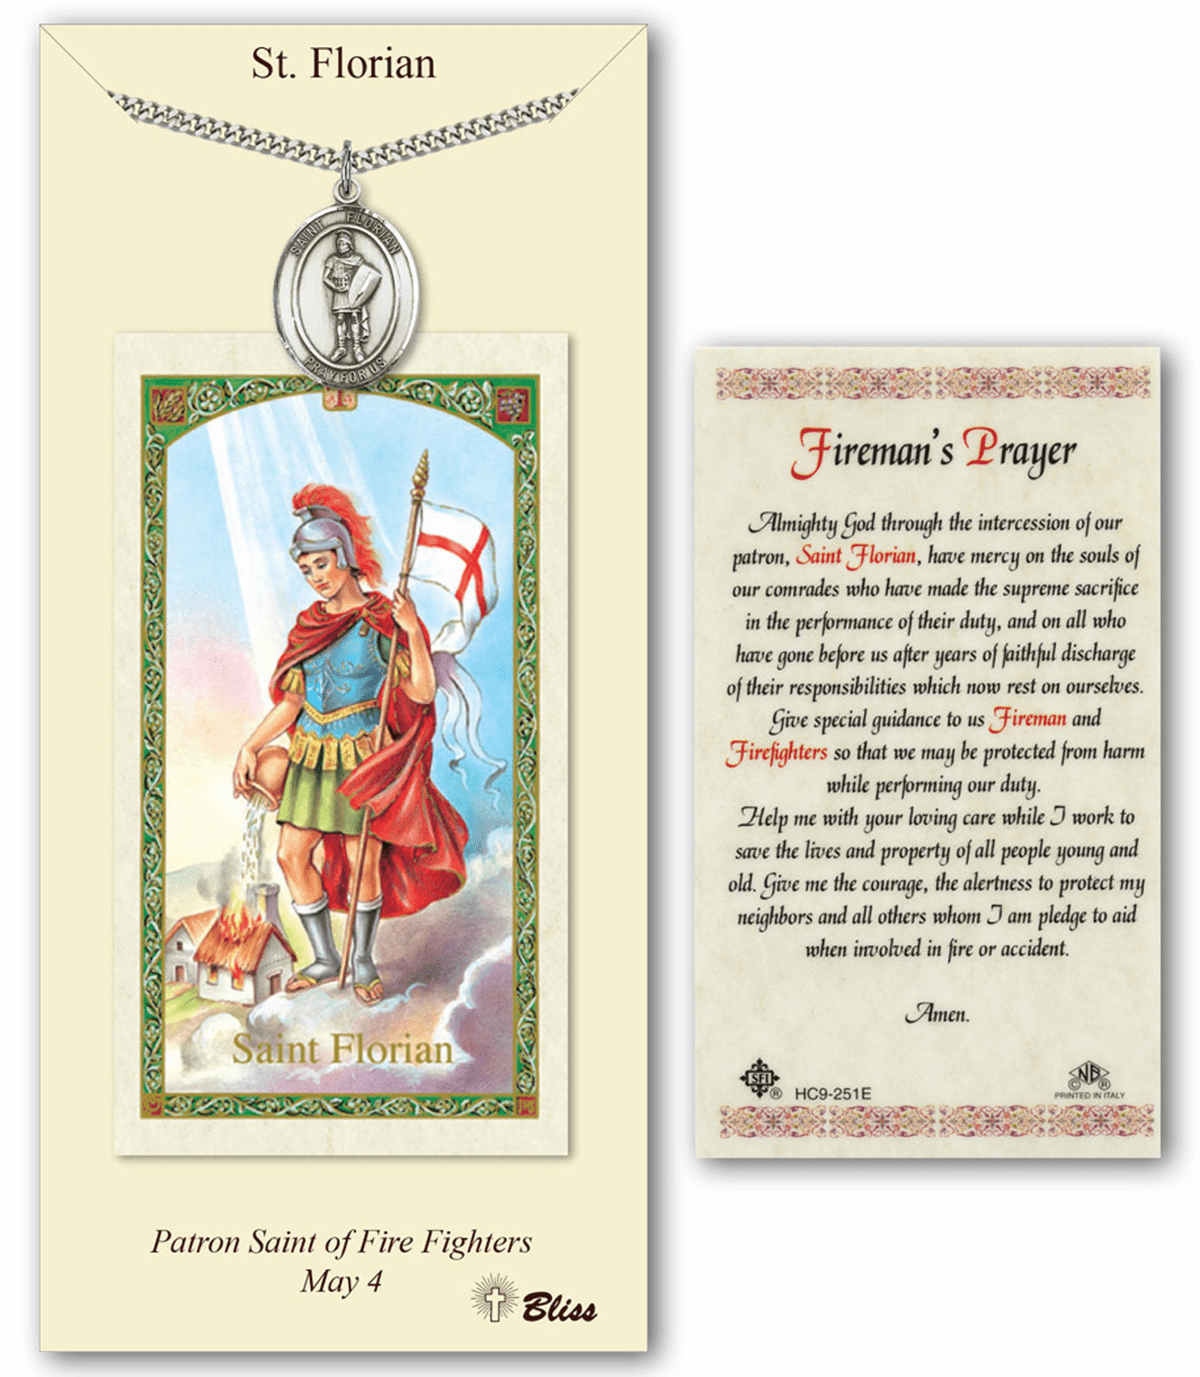 Bliss Mfg St Florian Fireman Prayer Card & Pendant Gift Set